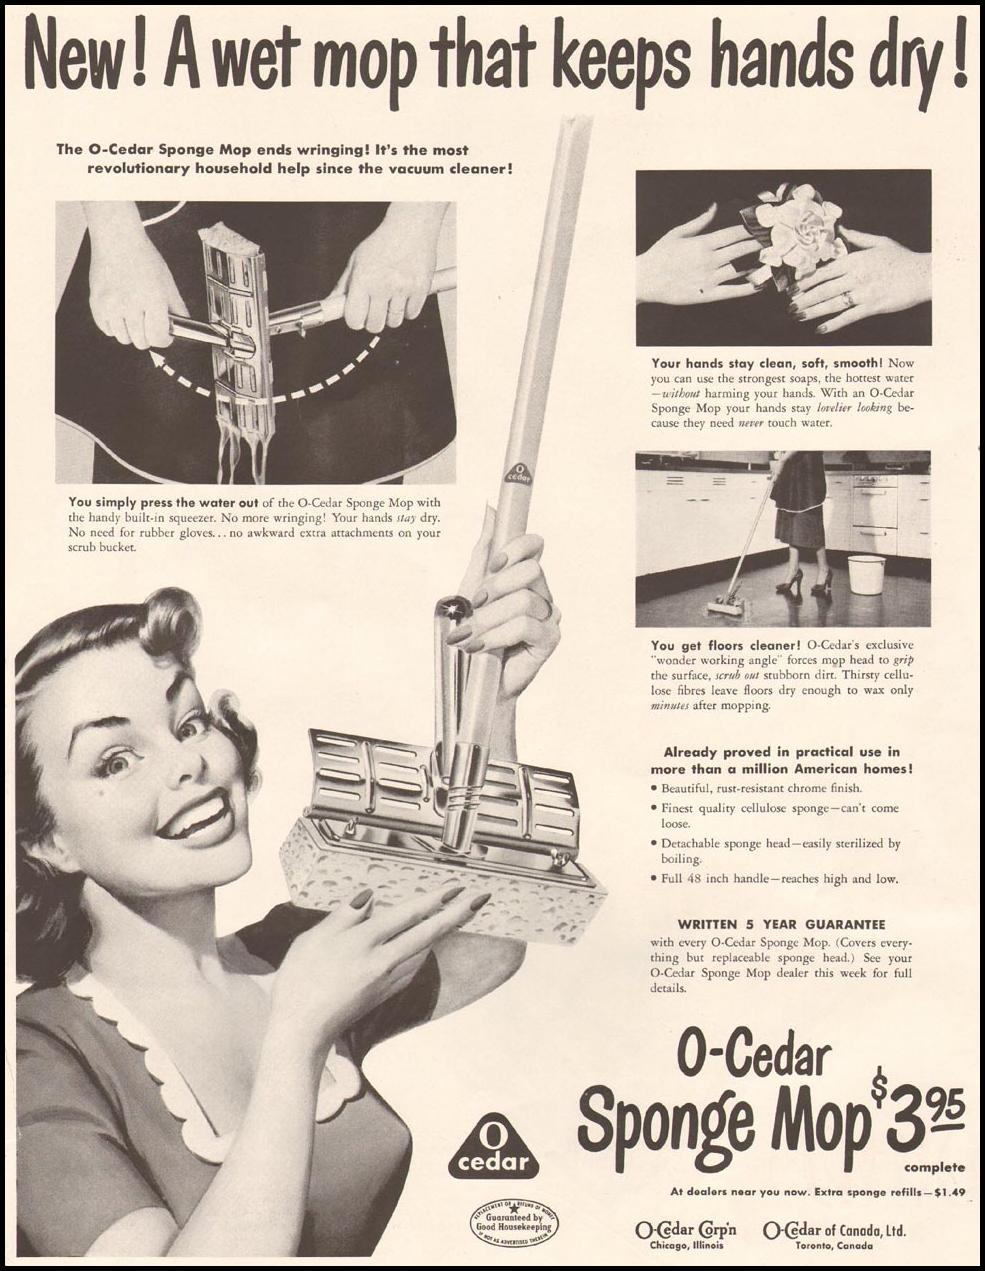 O-CEDAR SPONGE MOP LADIES' HOME JOURNAL 11/01/1950 p. 199